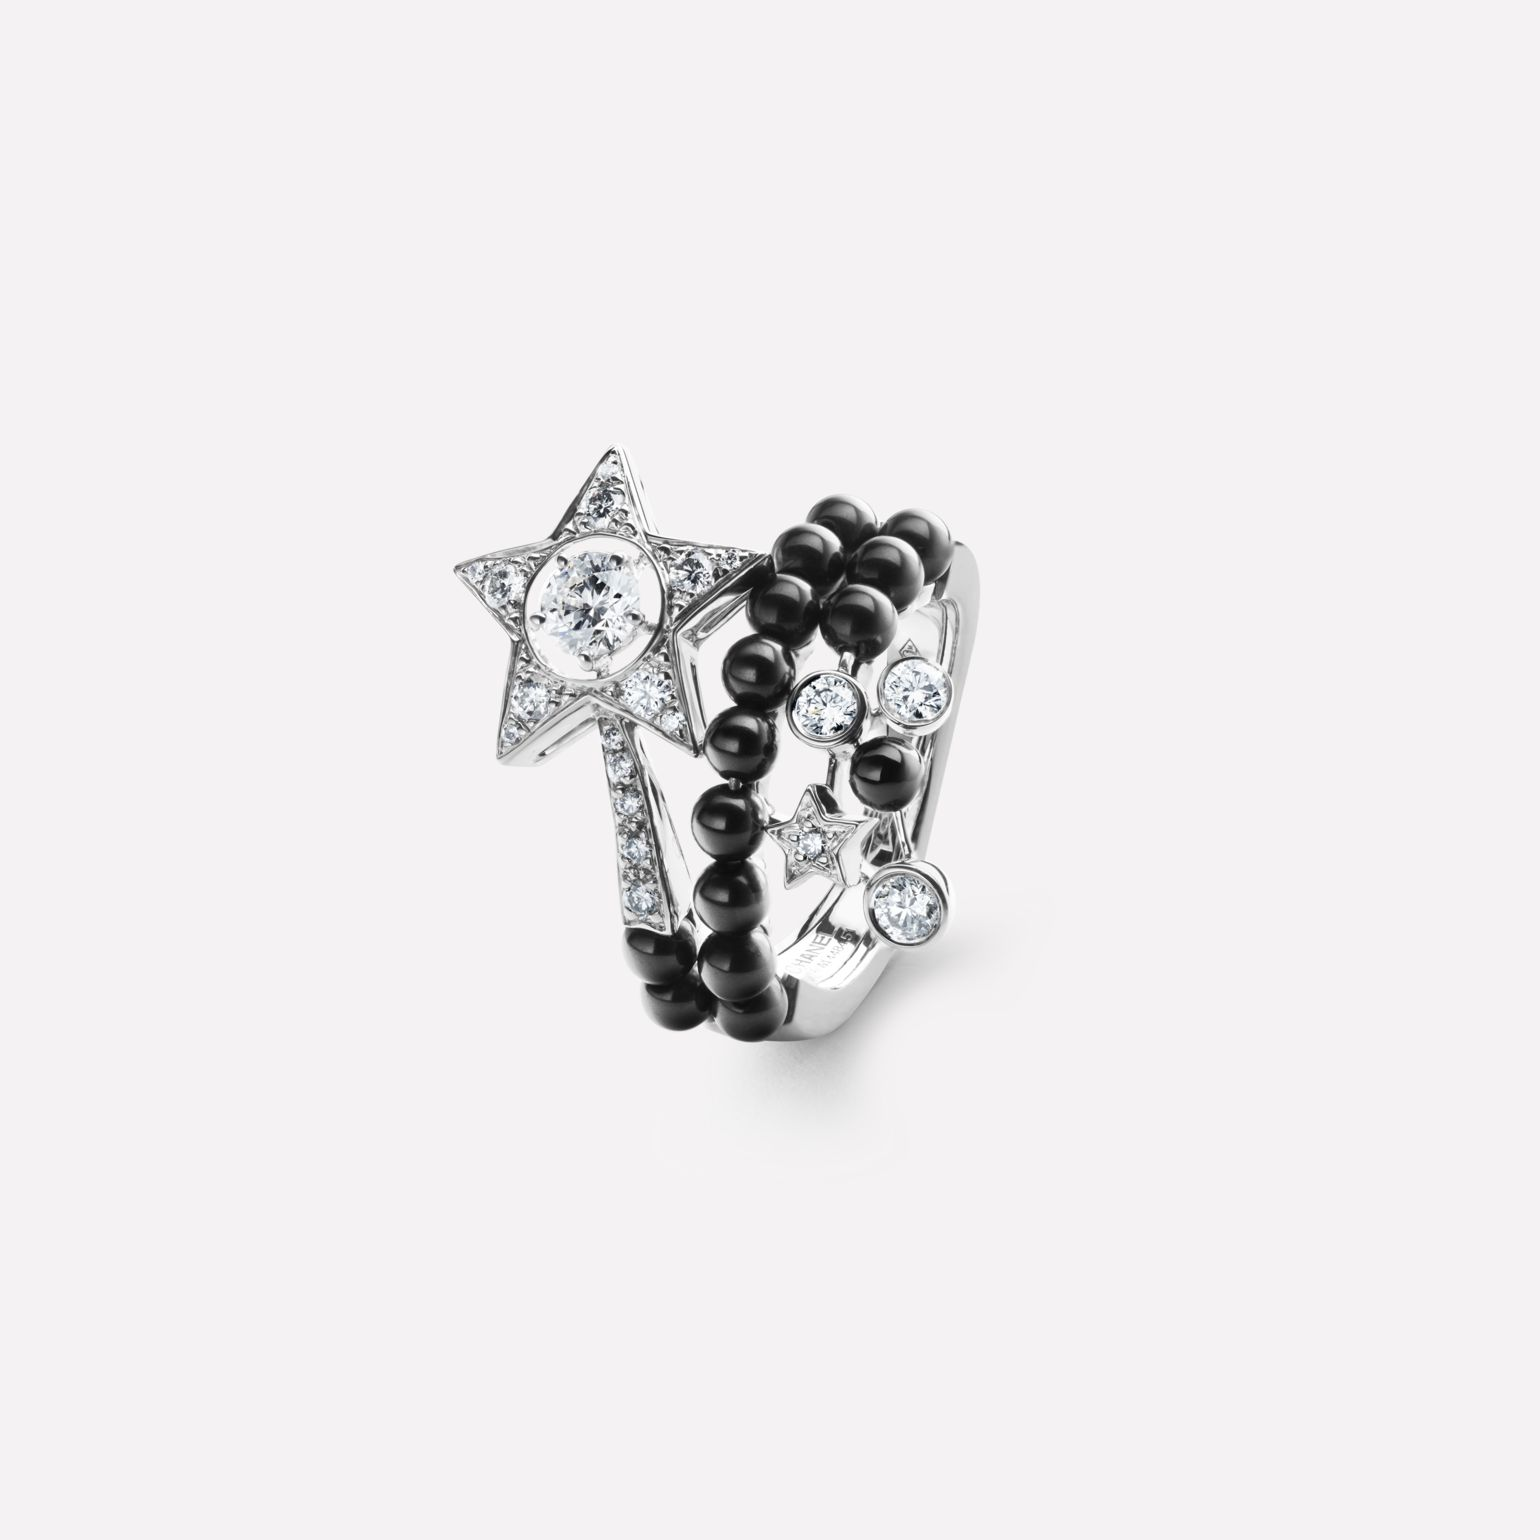 Comète ring Star ring in 18K white gold, diamonds and black spinels with one center diamond